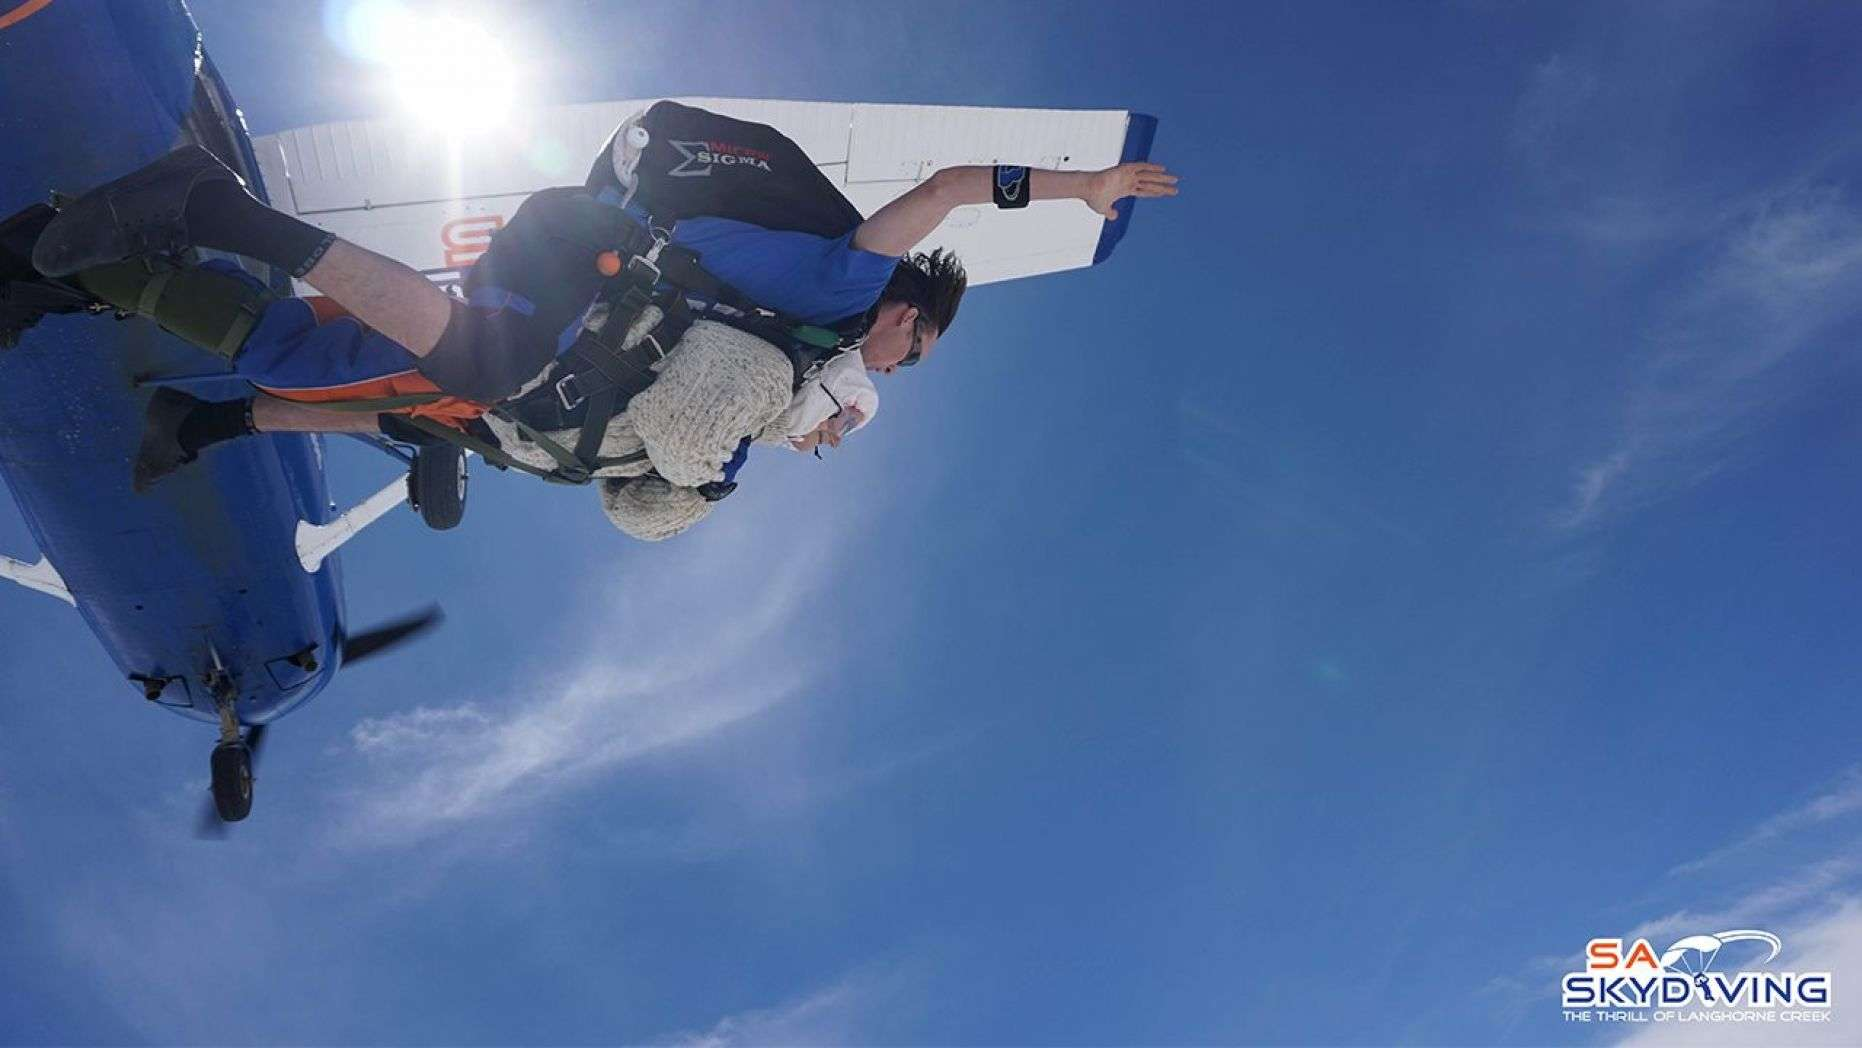 102-Year-Old Woman Becomes World's 'Oldest' Skydiver